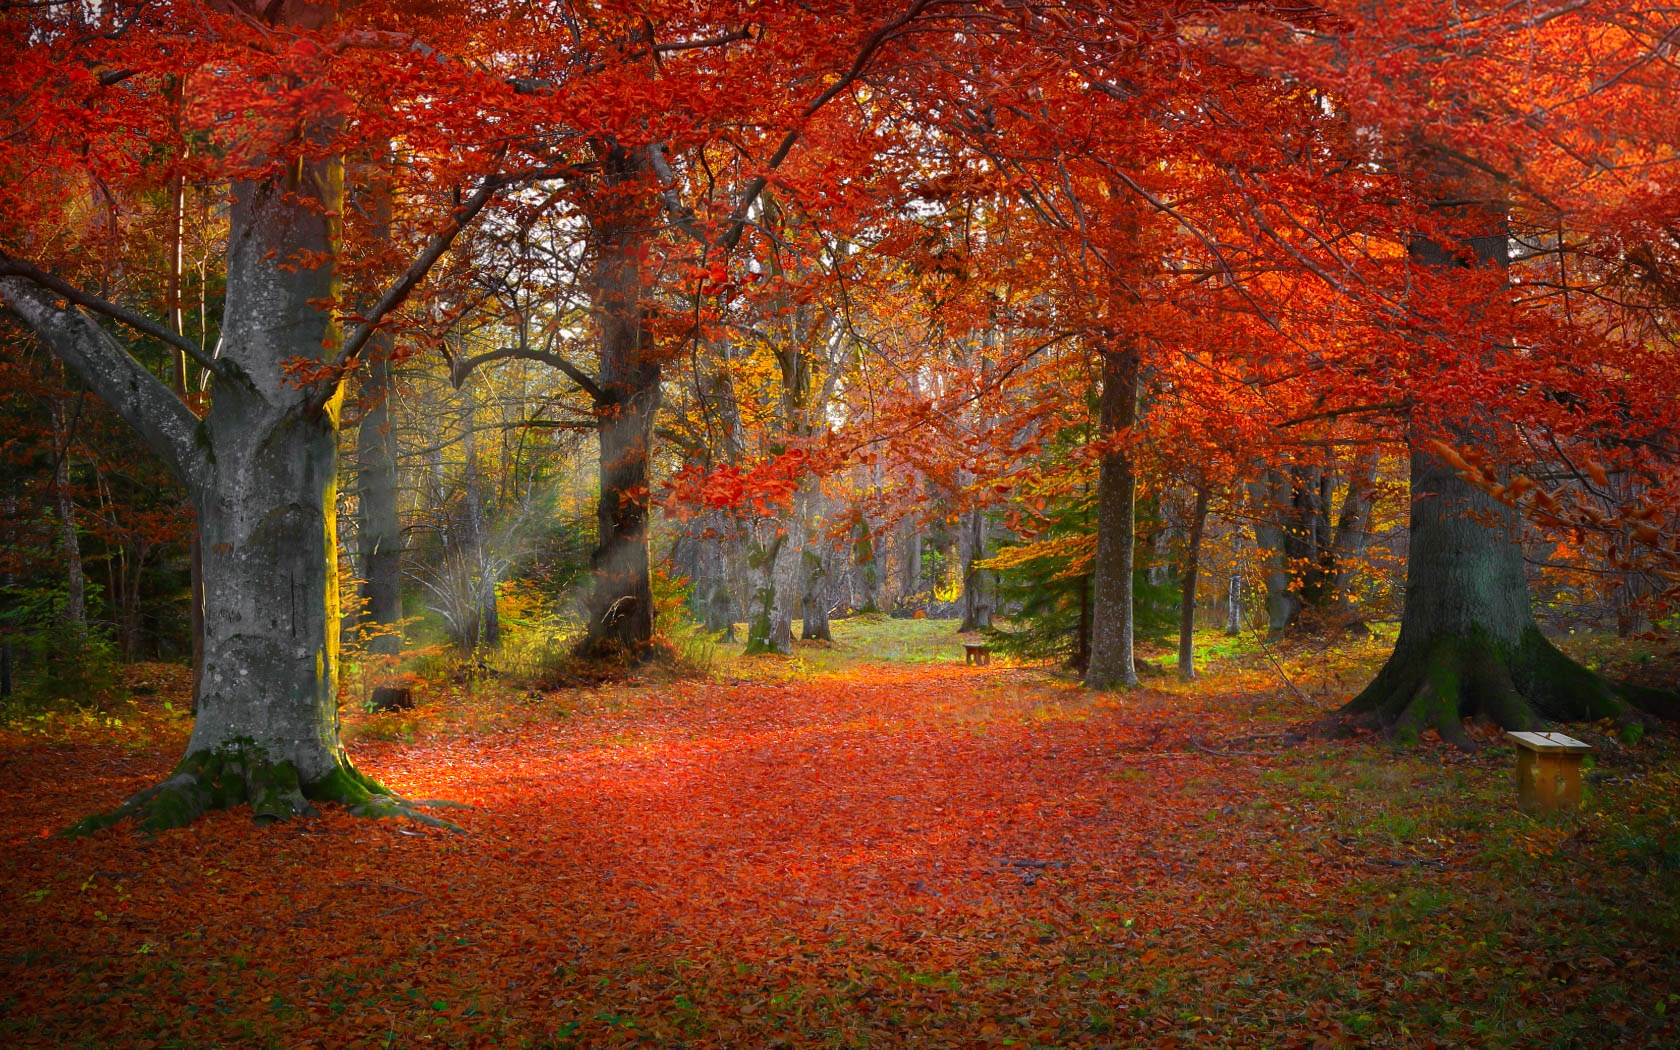 Fall colors in the park. by micke.wallman